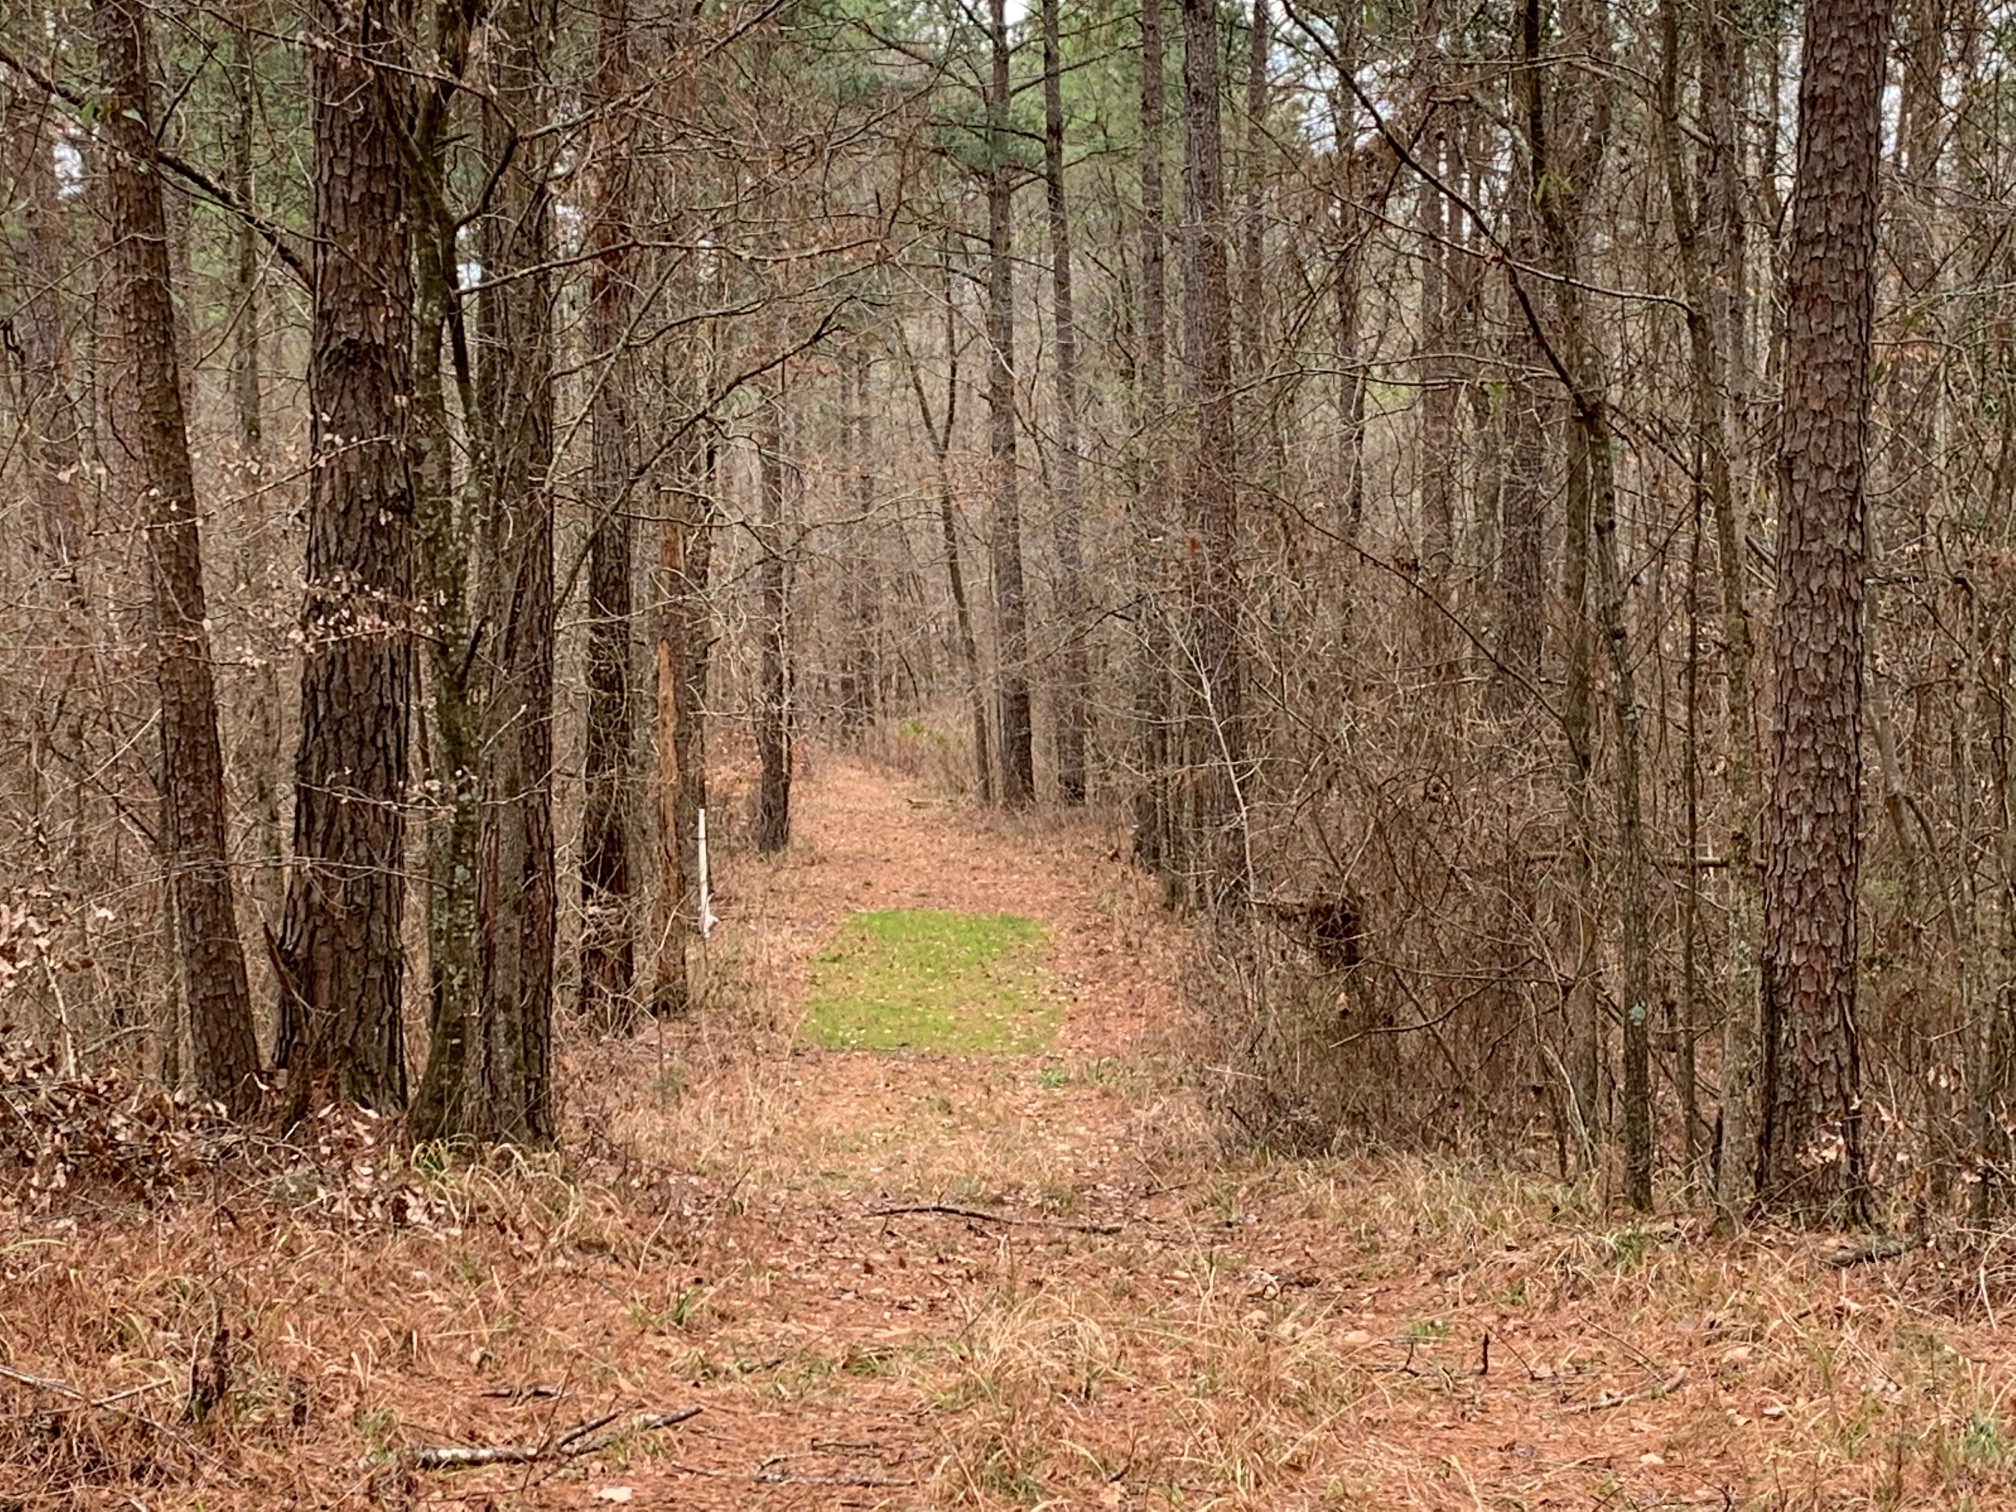 Jarmon Rd Tract, Lincoln Parish, 40 acres +/-